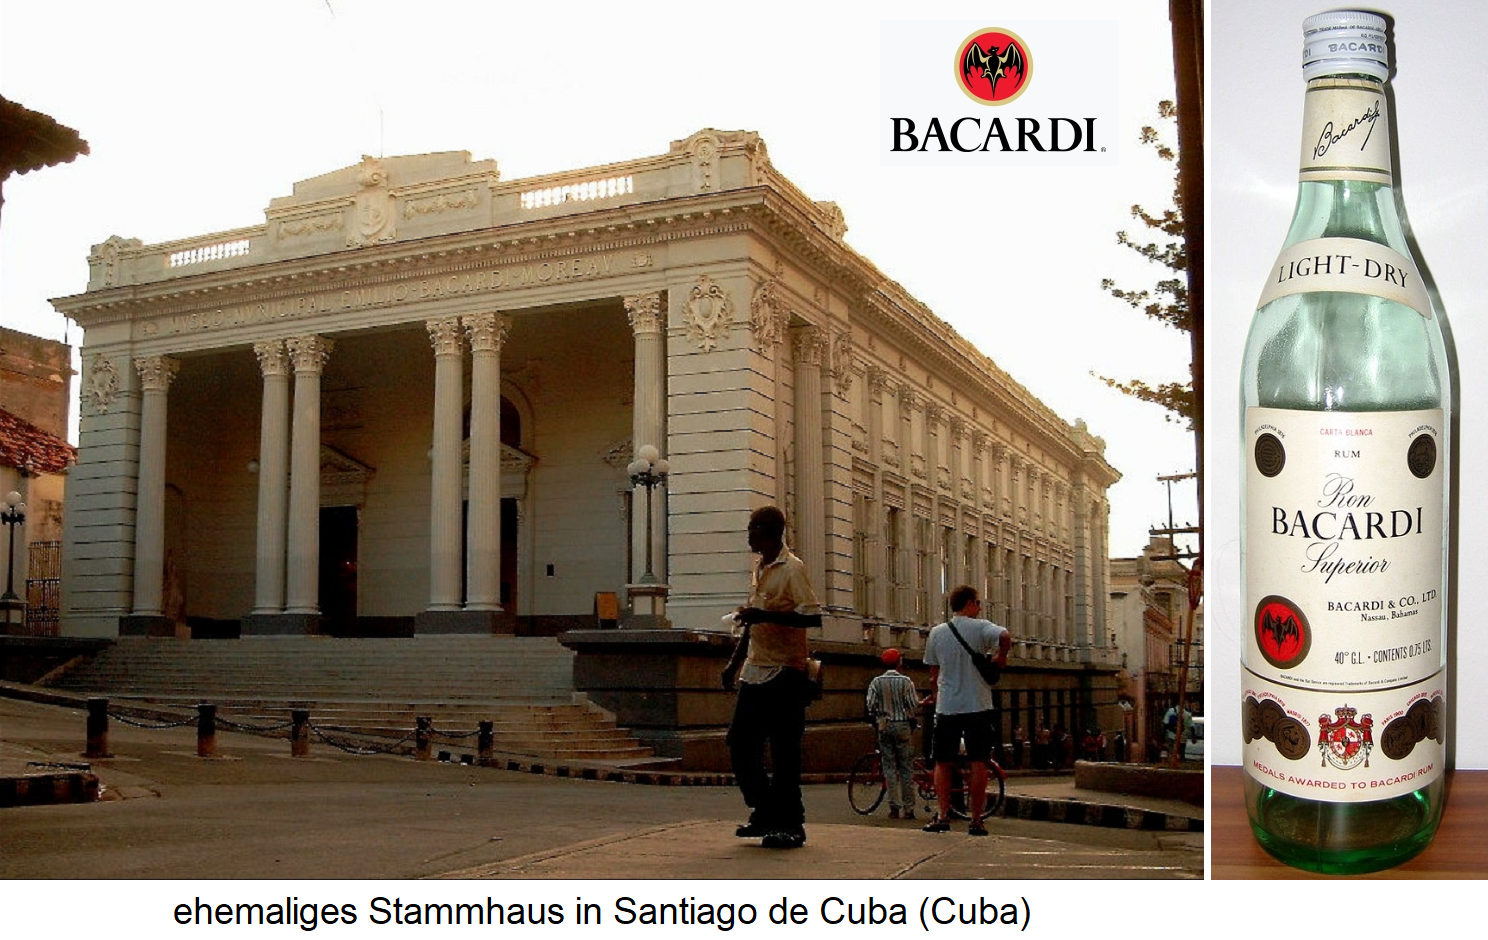 Bacardi-Martini Limited - former home in Santiago de Cuba and white rum